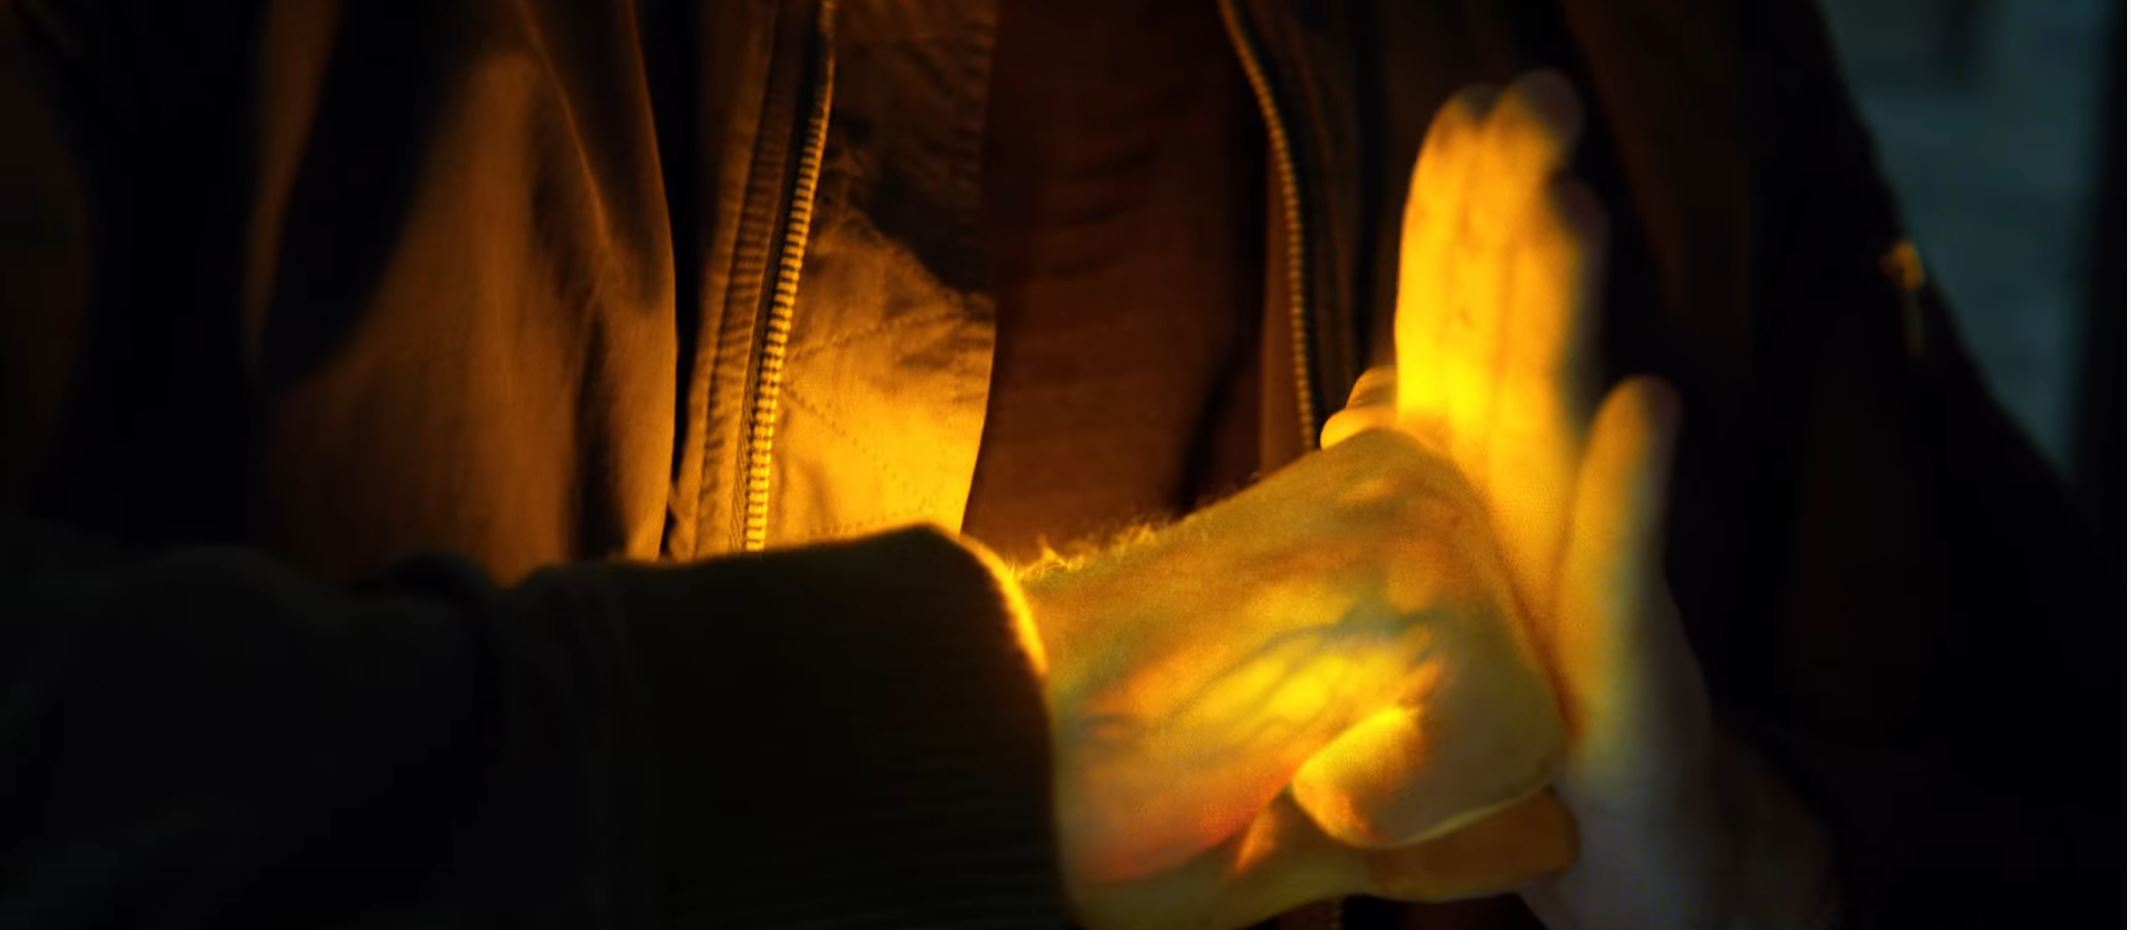 Marvels & Netflix Next Super Hero Is Here, Watch The Trailer For Iron Fist